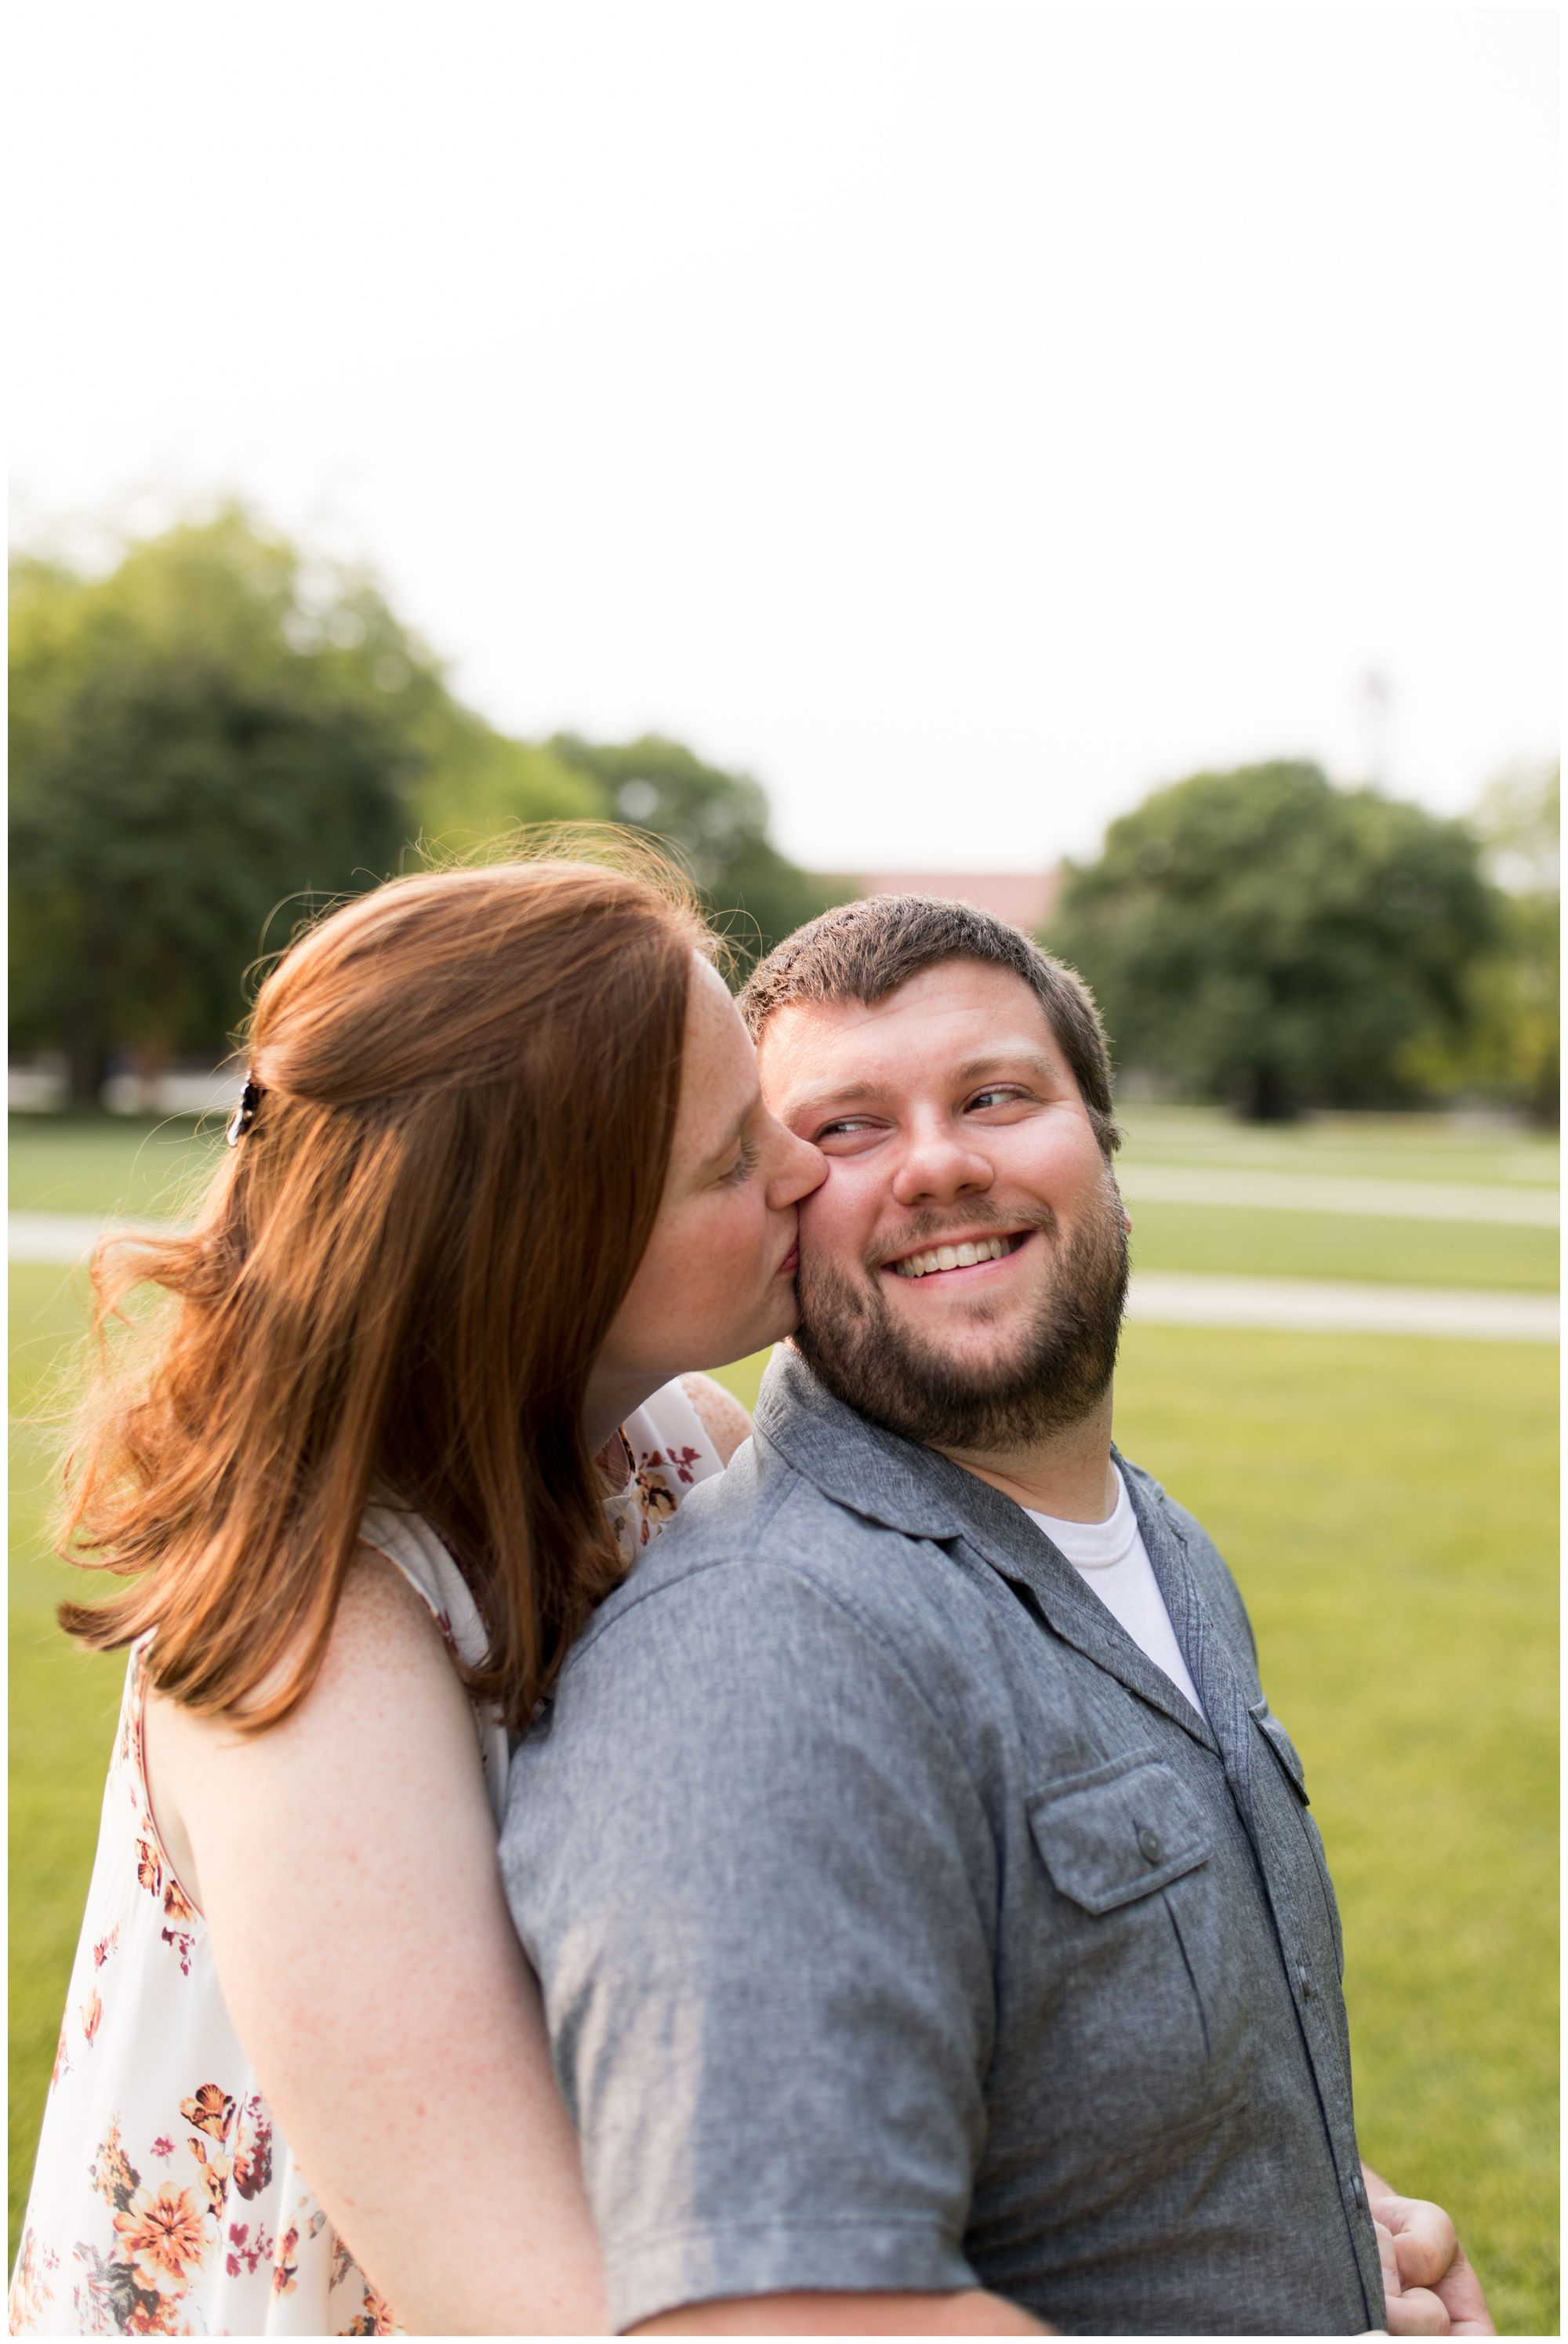 bride kisses groom on cheek during Purdue University engagement session in Lafayette, Indiana